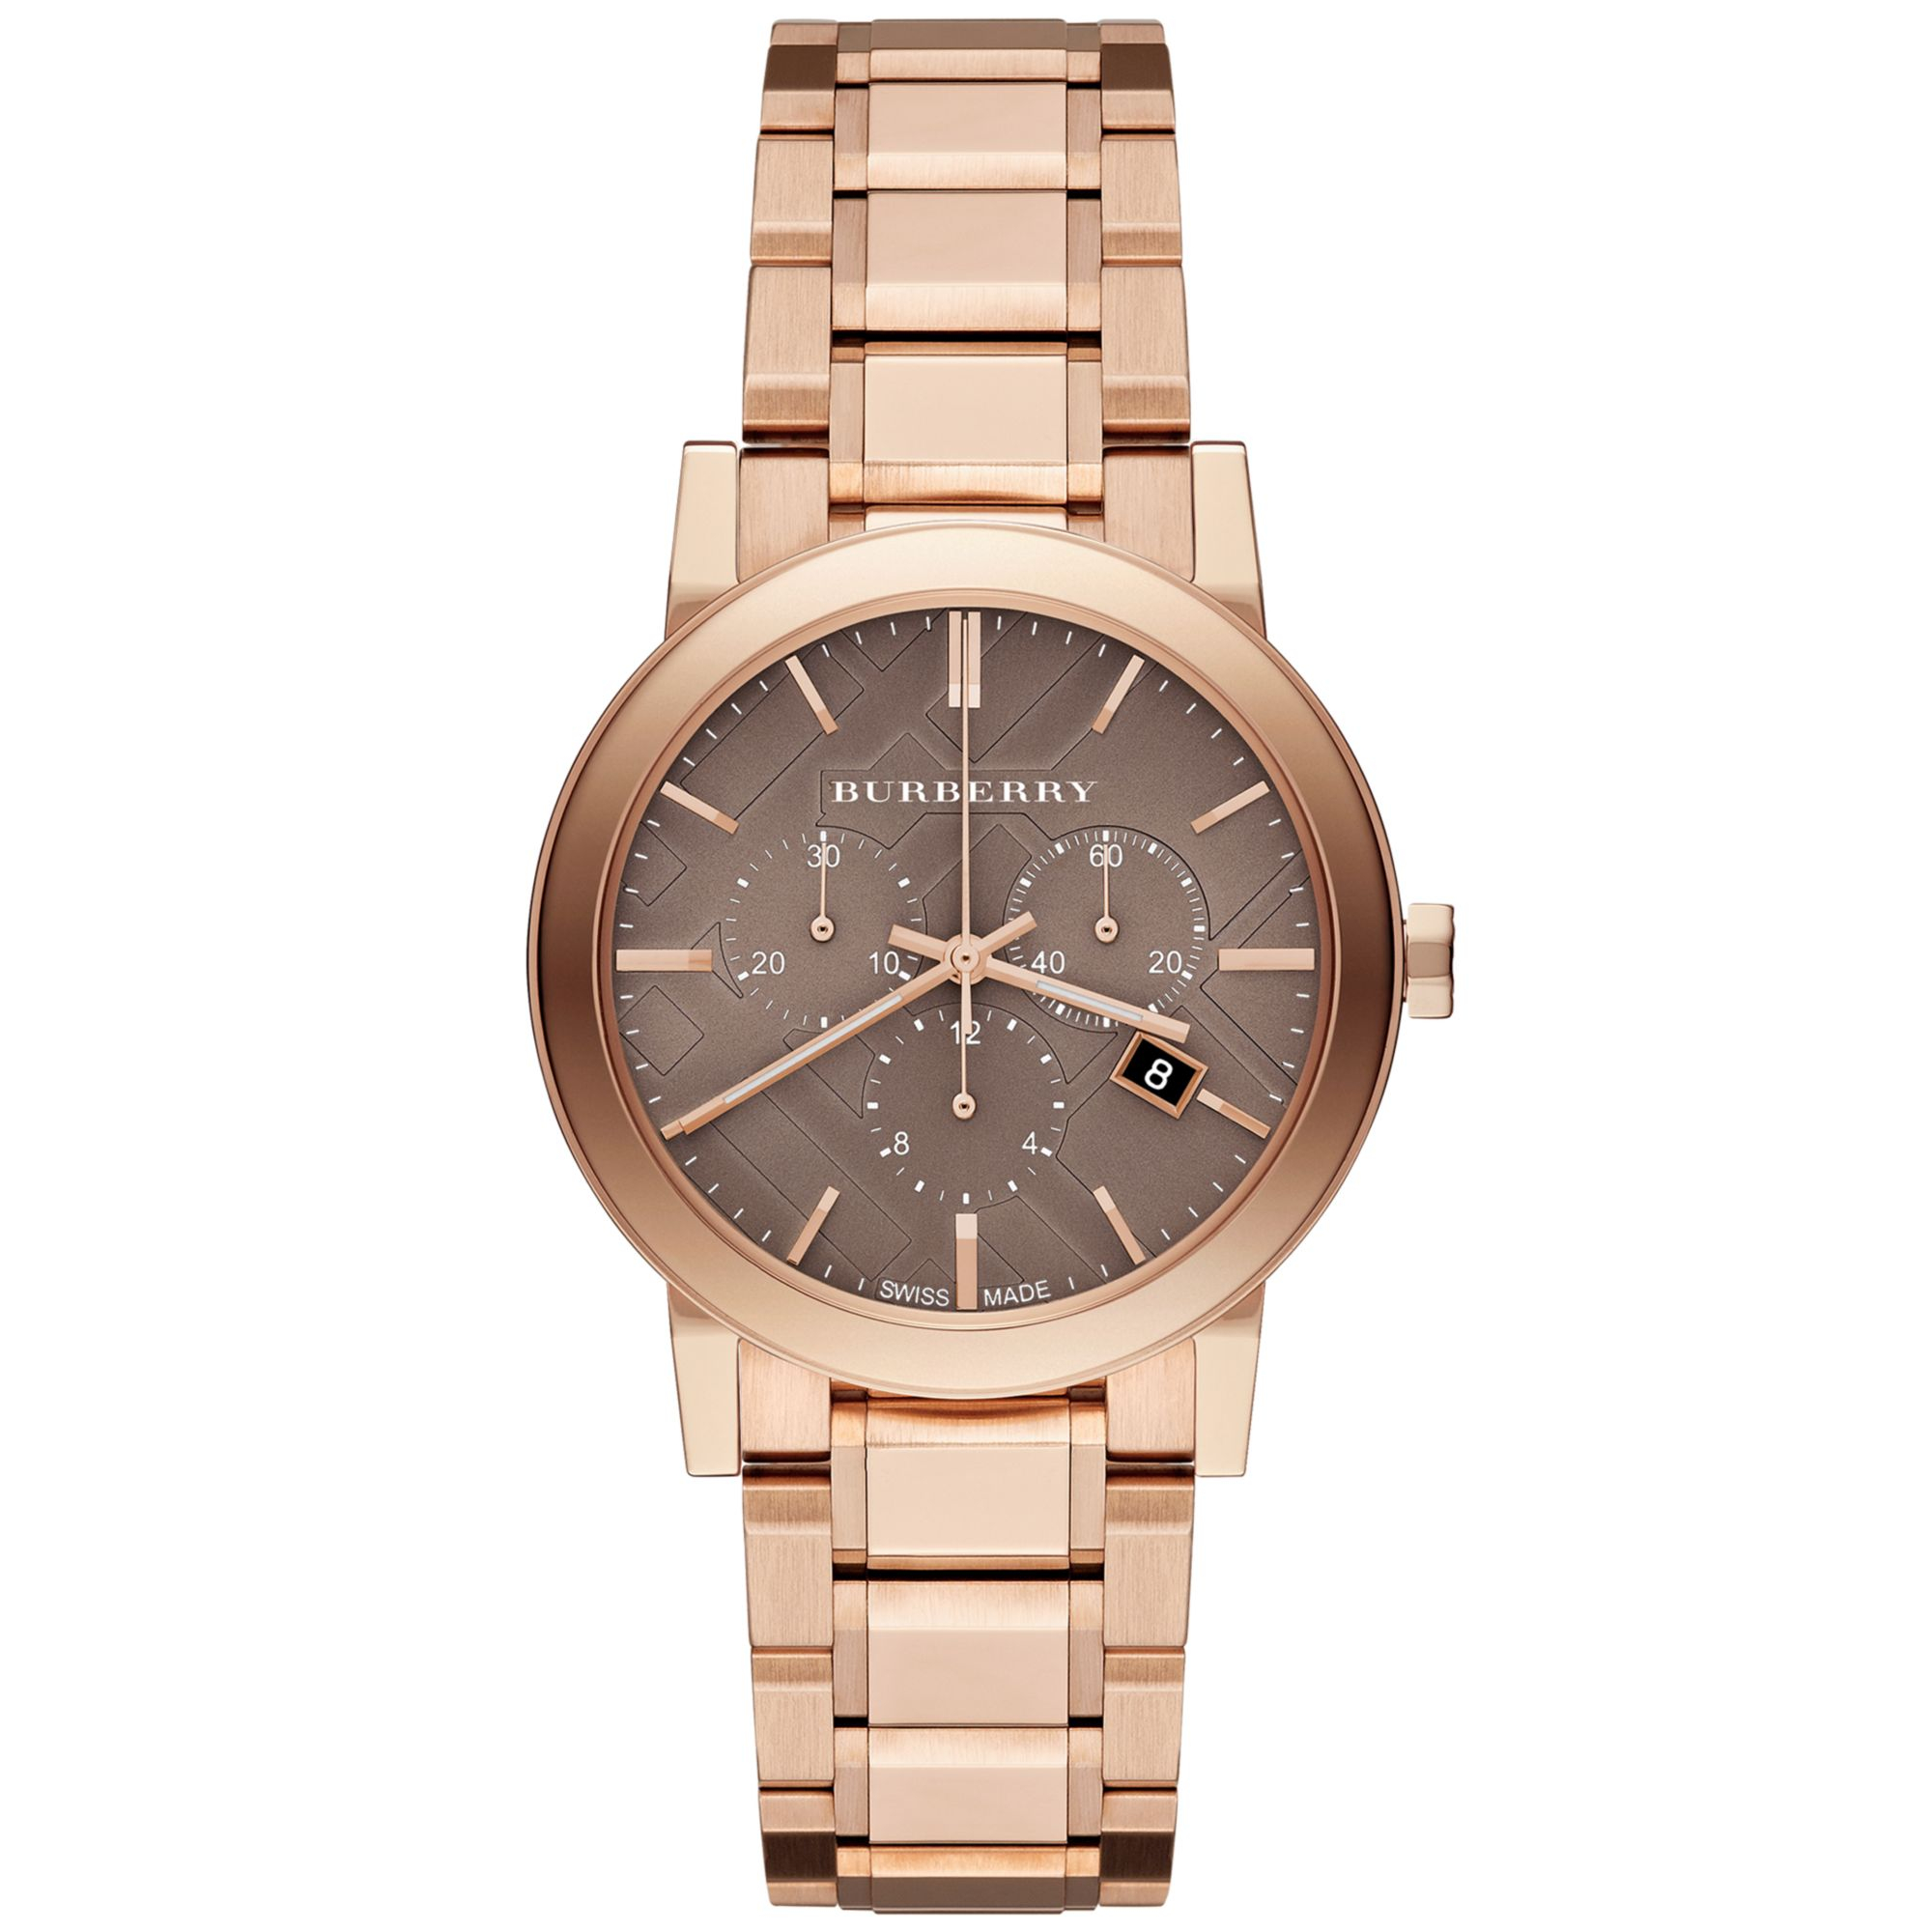 burberry gold lyst steel unisex bracelet chronograph watch watches accessories product plated rose pink stainless golden the dial gallery ionplated city ion normal swiss